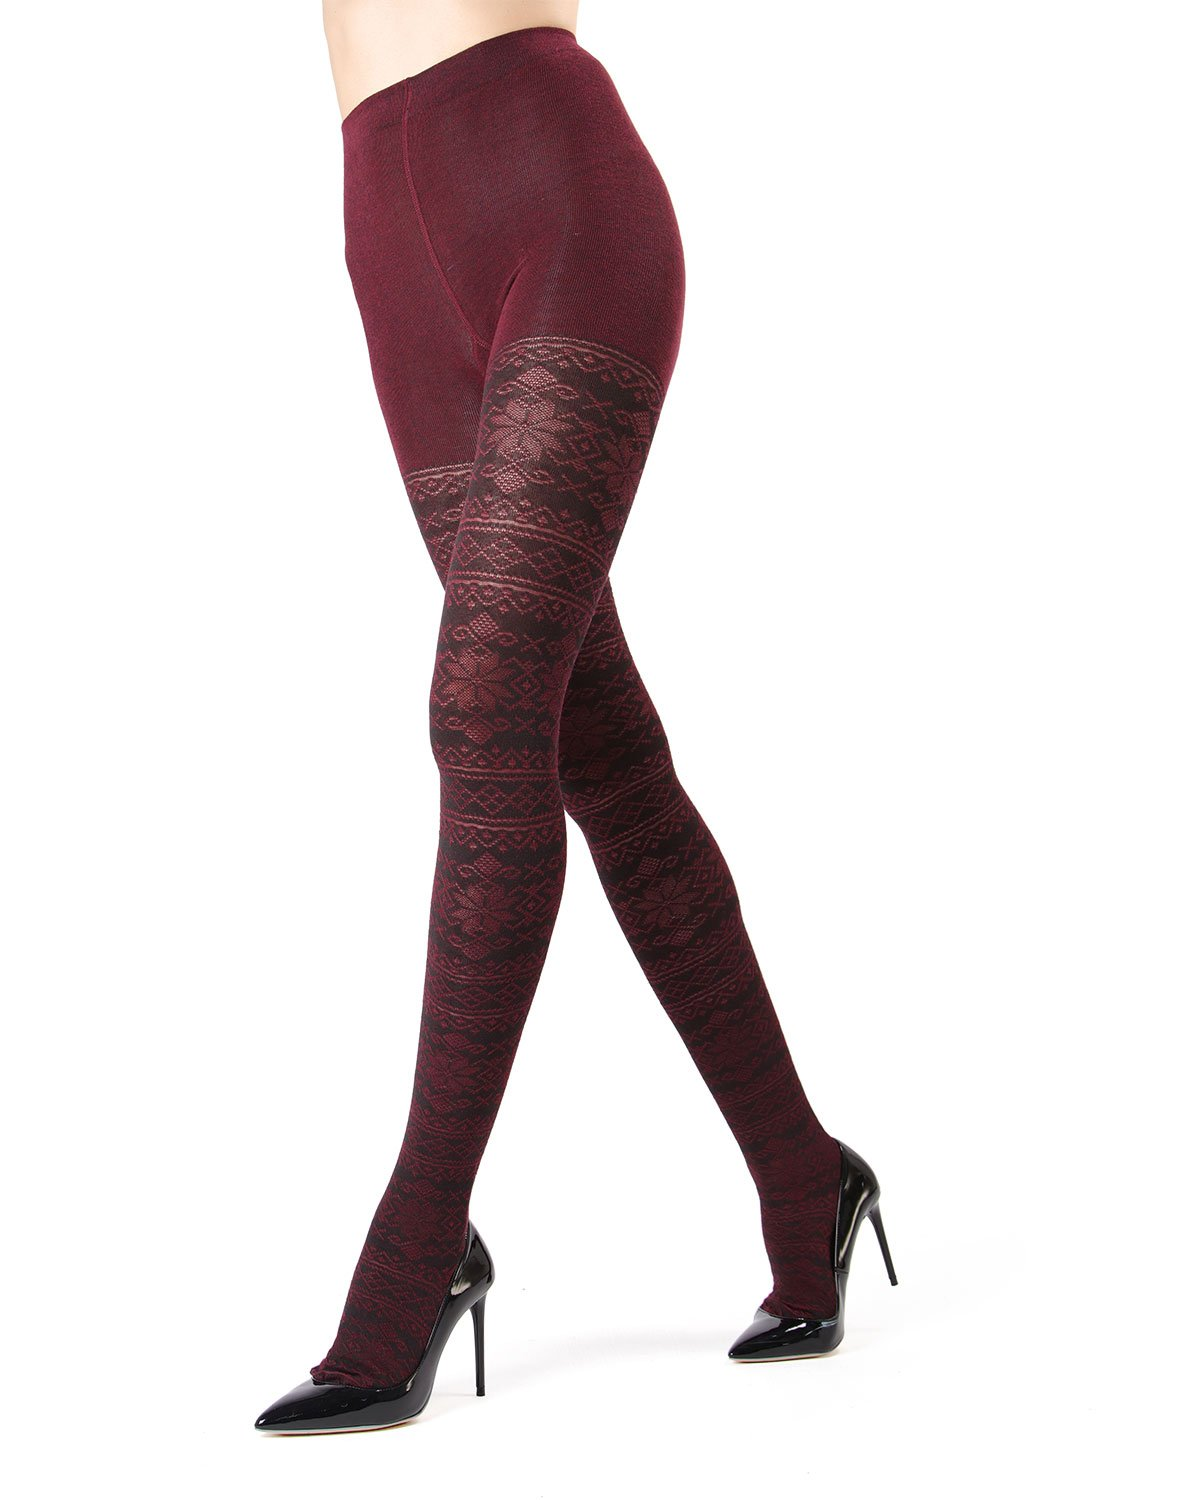 -MF7-121- Burgundy Heather-